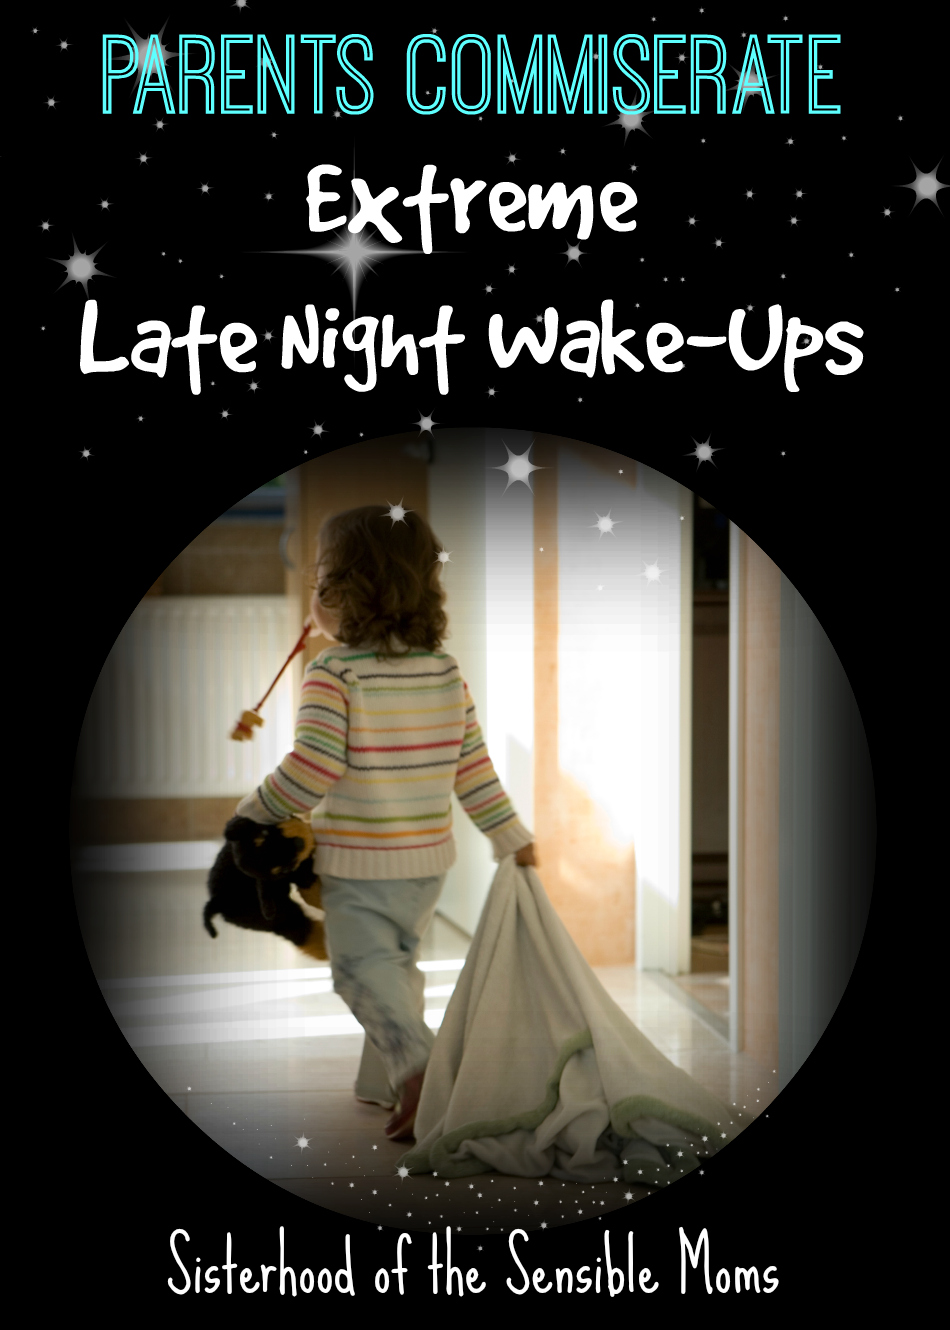 Parents Commiserate! Extreme Late Night Wake-Ups. Is there anything more jarring that being woken up in the middle of the night? |Parenting Humor| Sisterhood of the Sensible Moms